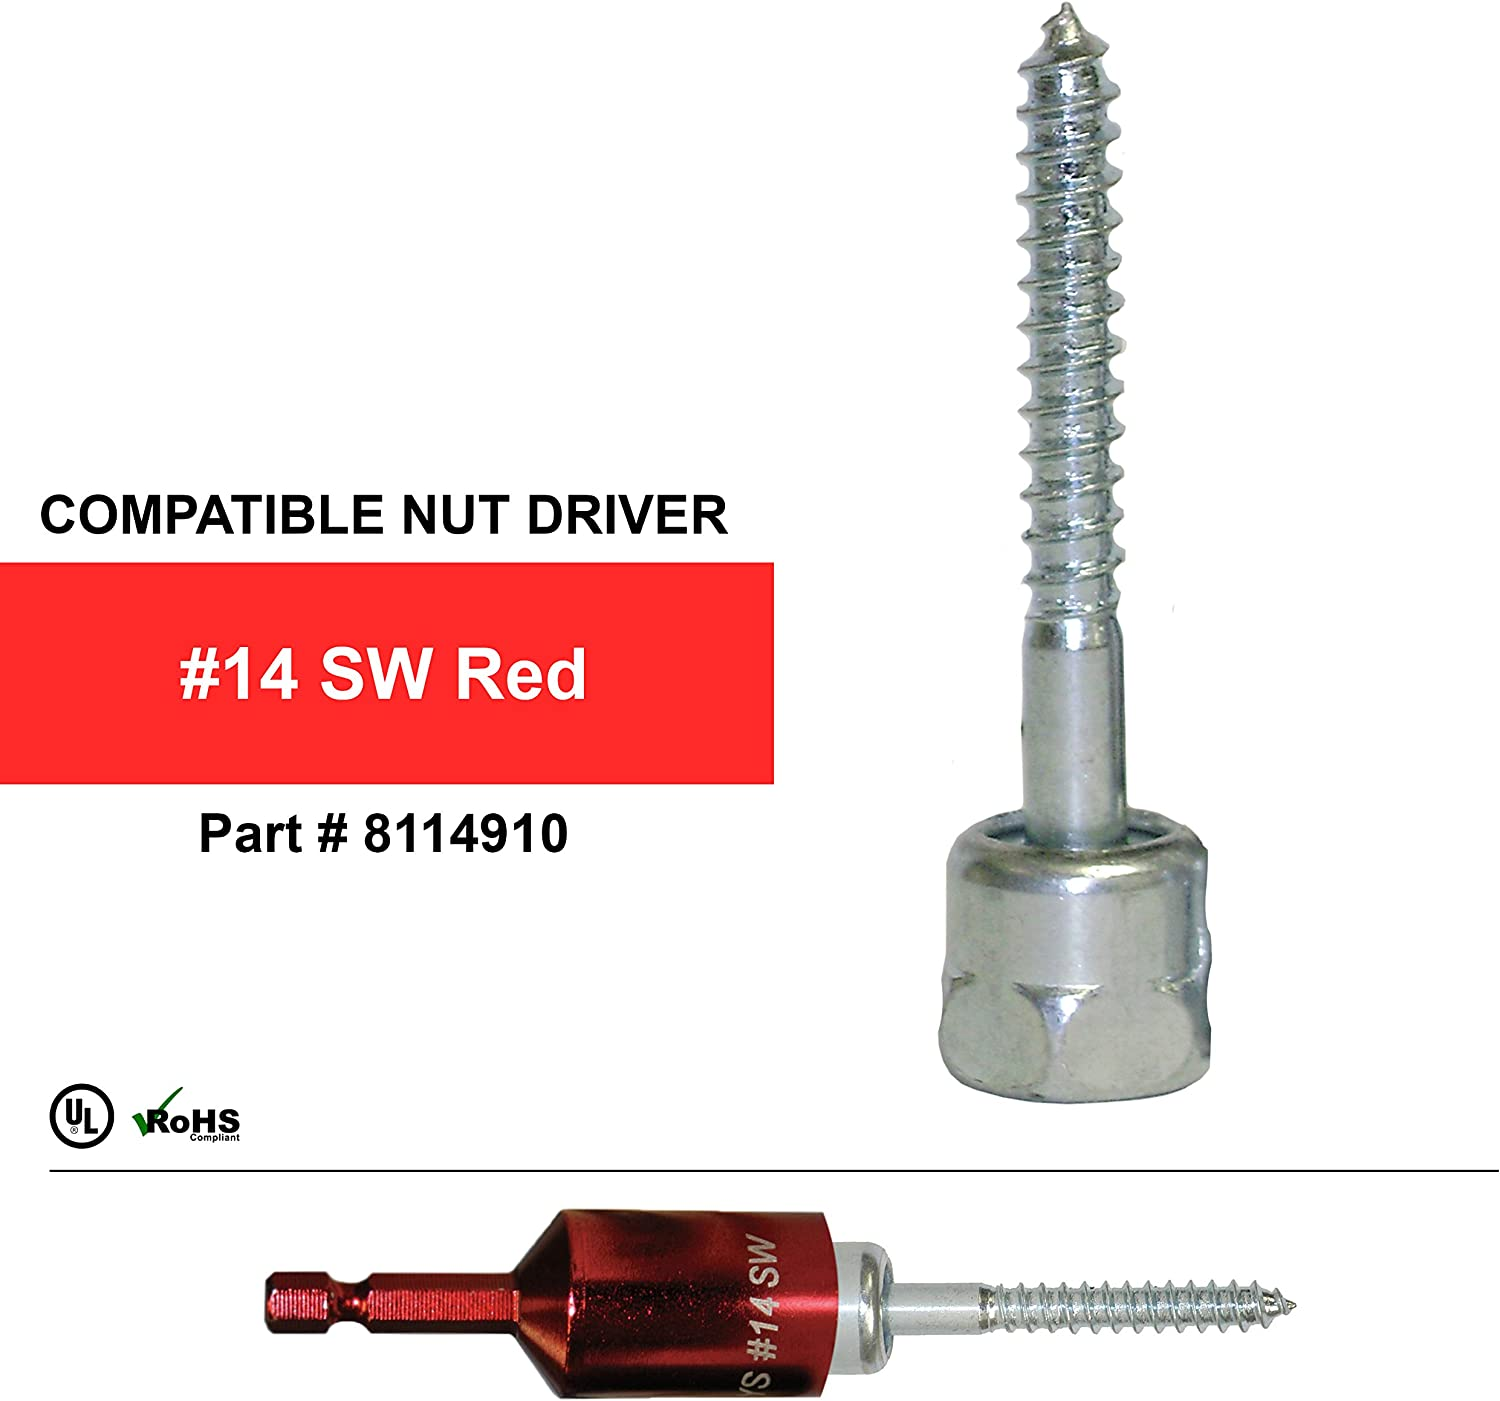 Rod Hanger Corrosion Resistance Everflow Sammys 8023925-50 SWG 30 3//8 inch Screw Sidewinder Designed for Wood 1//4 x 3 inch Screw Length Pack of 50 Steel with Zinc Plated Everflow Supplies Installs Horizontally